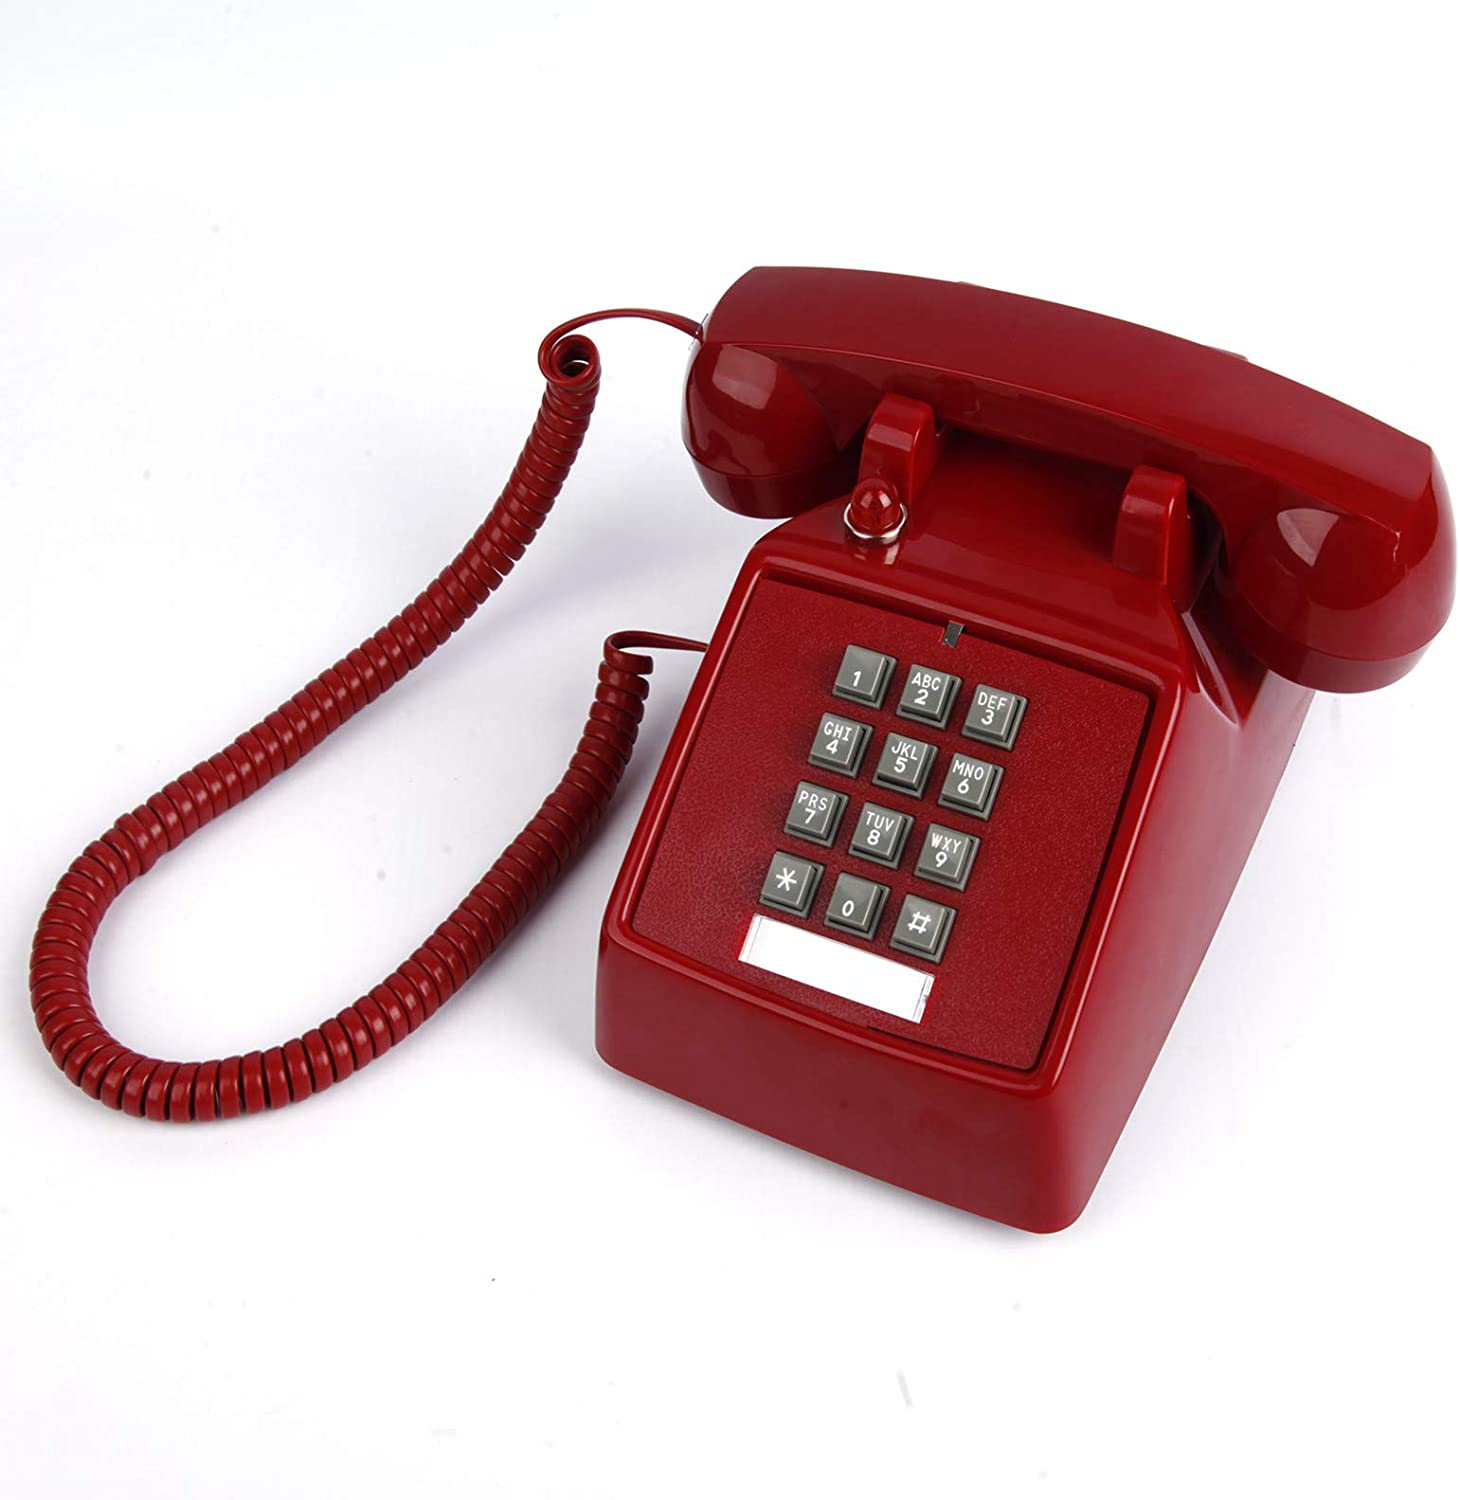 Single Line Corded Desk Phone with Red Indicator, Retro Phone with Extra Loud Ringer, Old Style Desktop Landline Phone for Home, Hotel, Office and School, Ash, Black, Red.